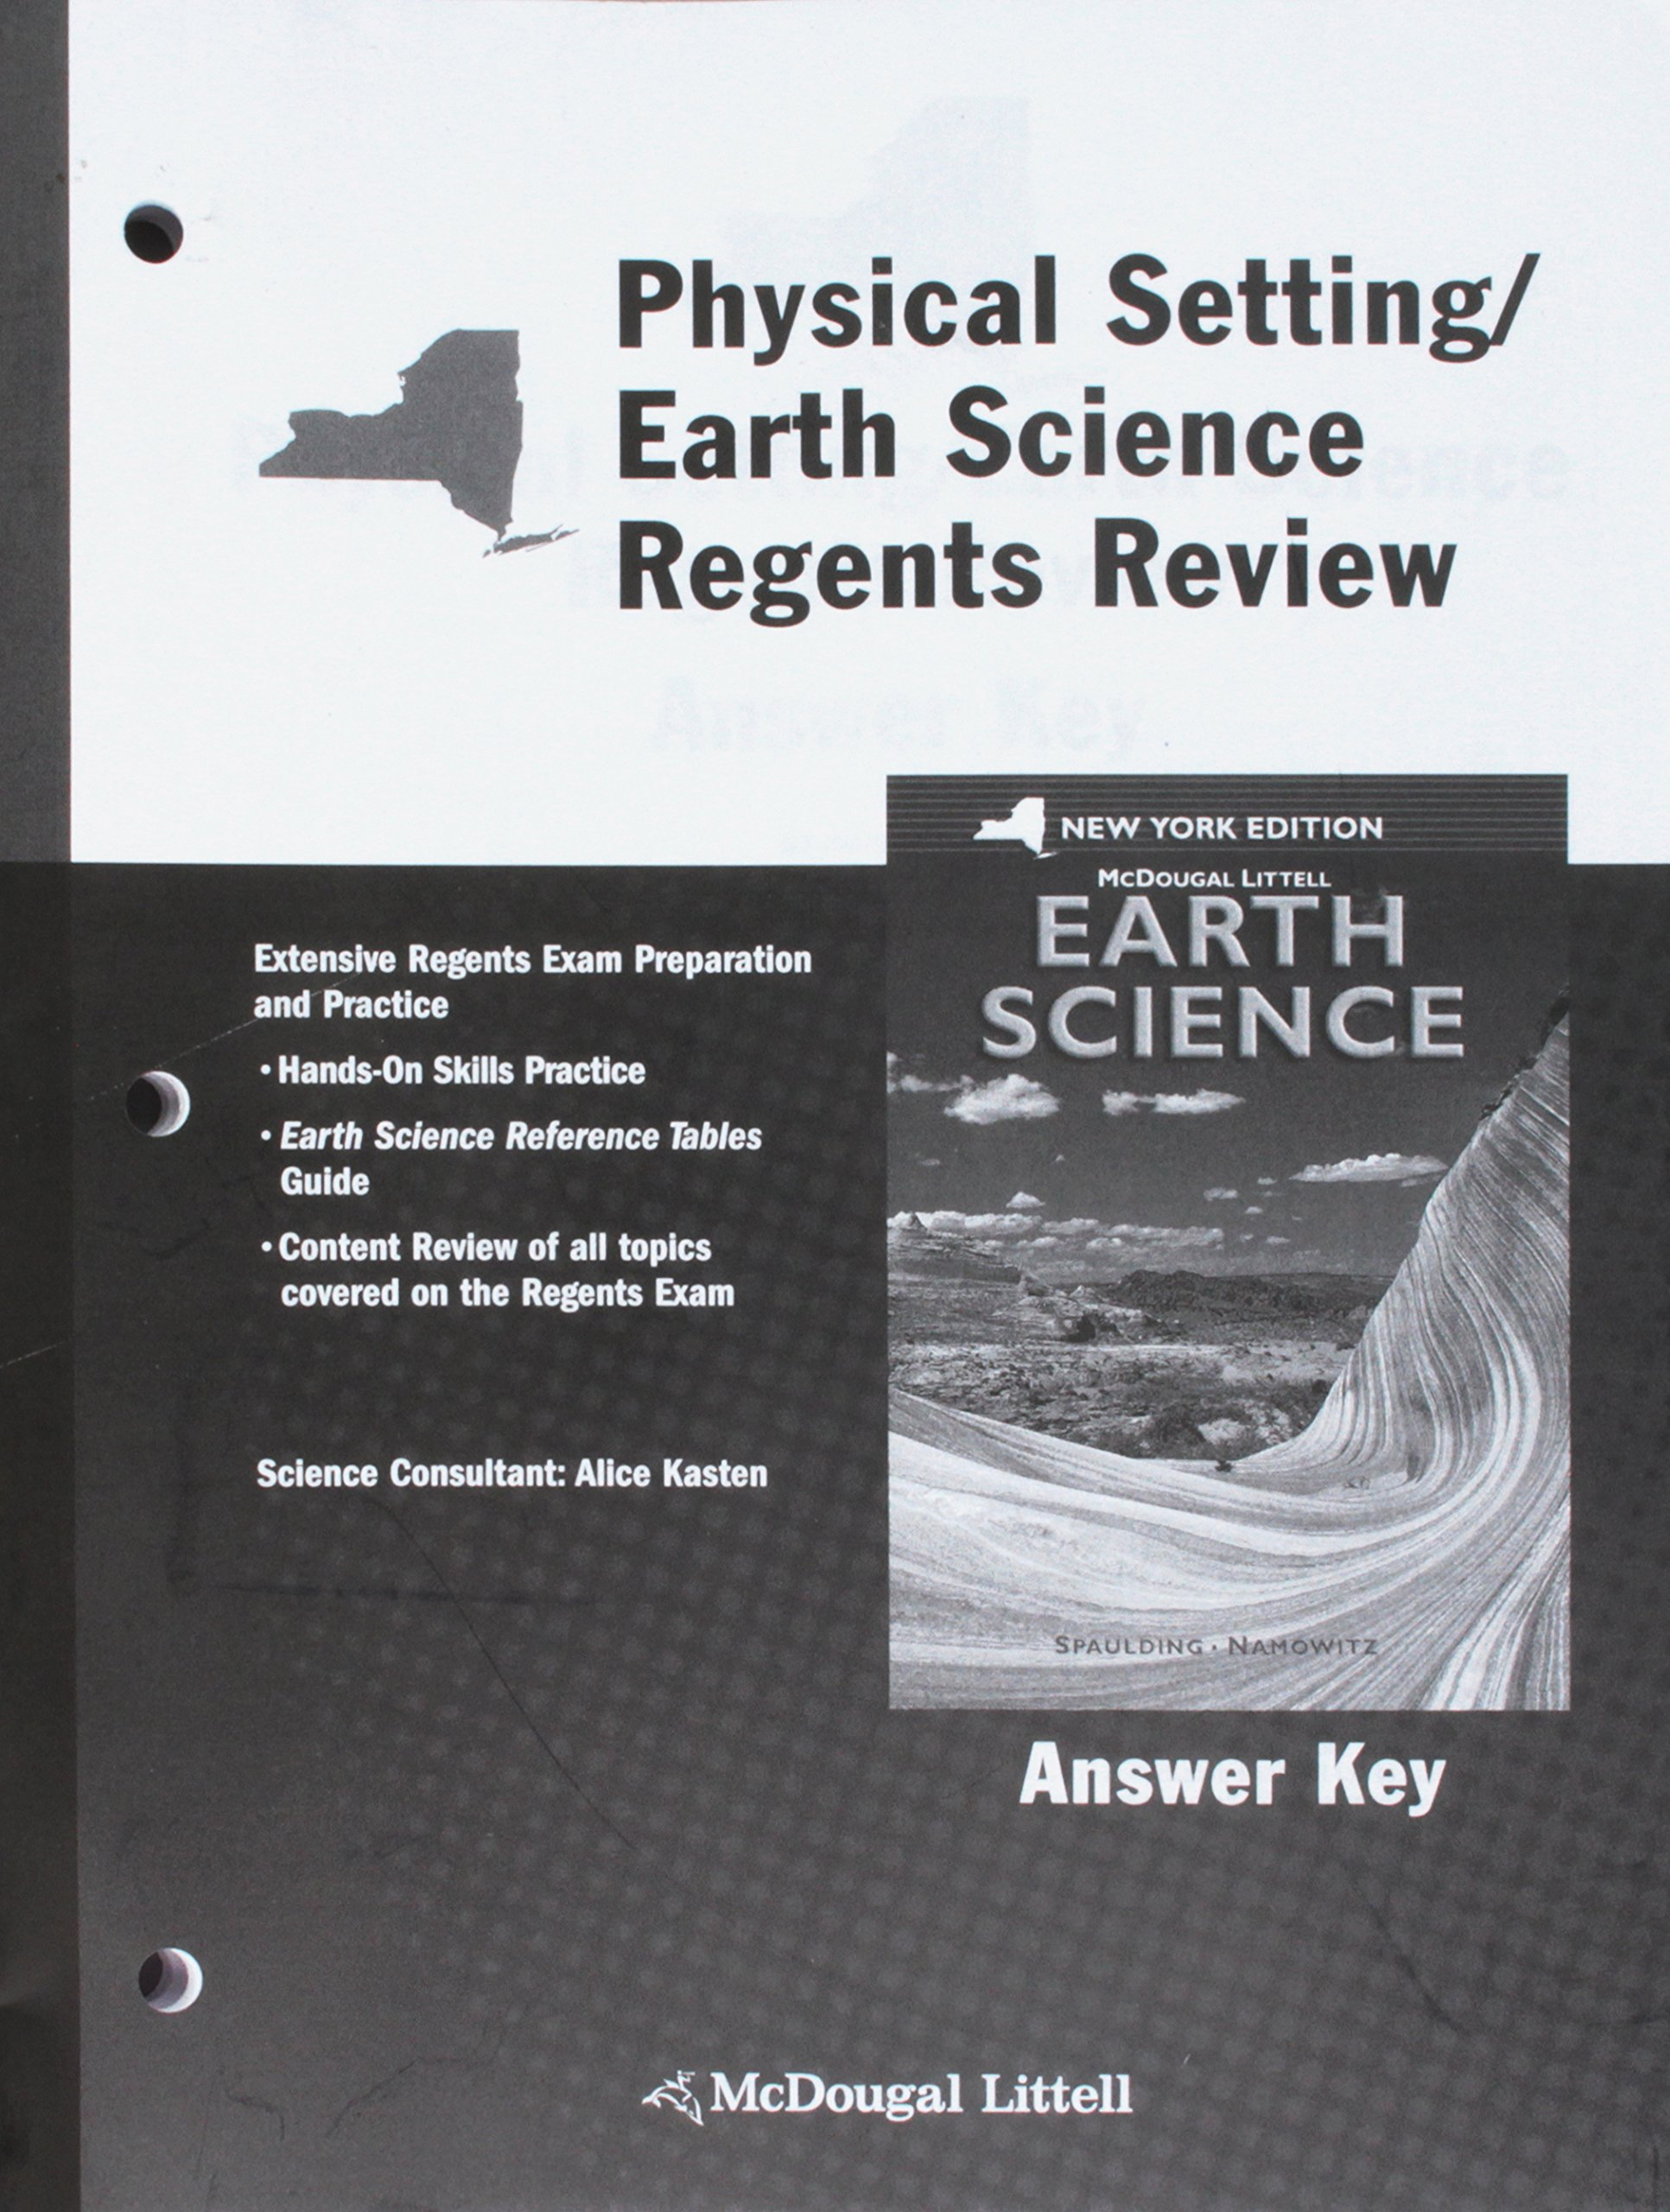 McDougal Littell Earth Science New York: Regents Review Answer Key